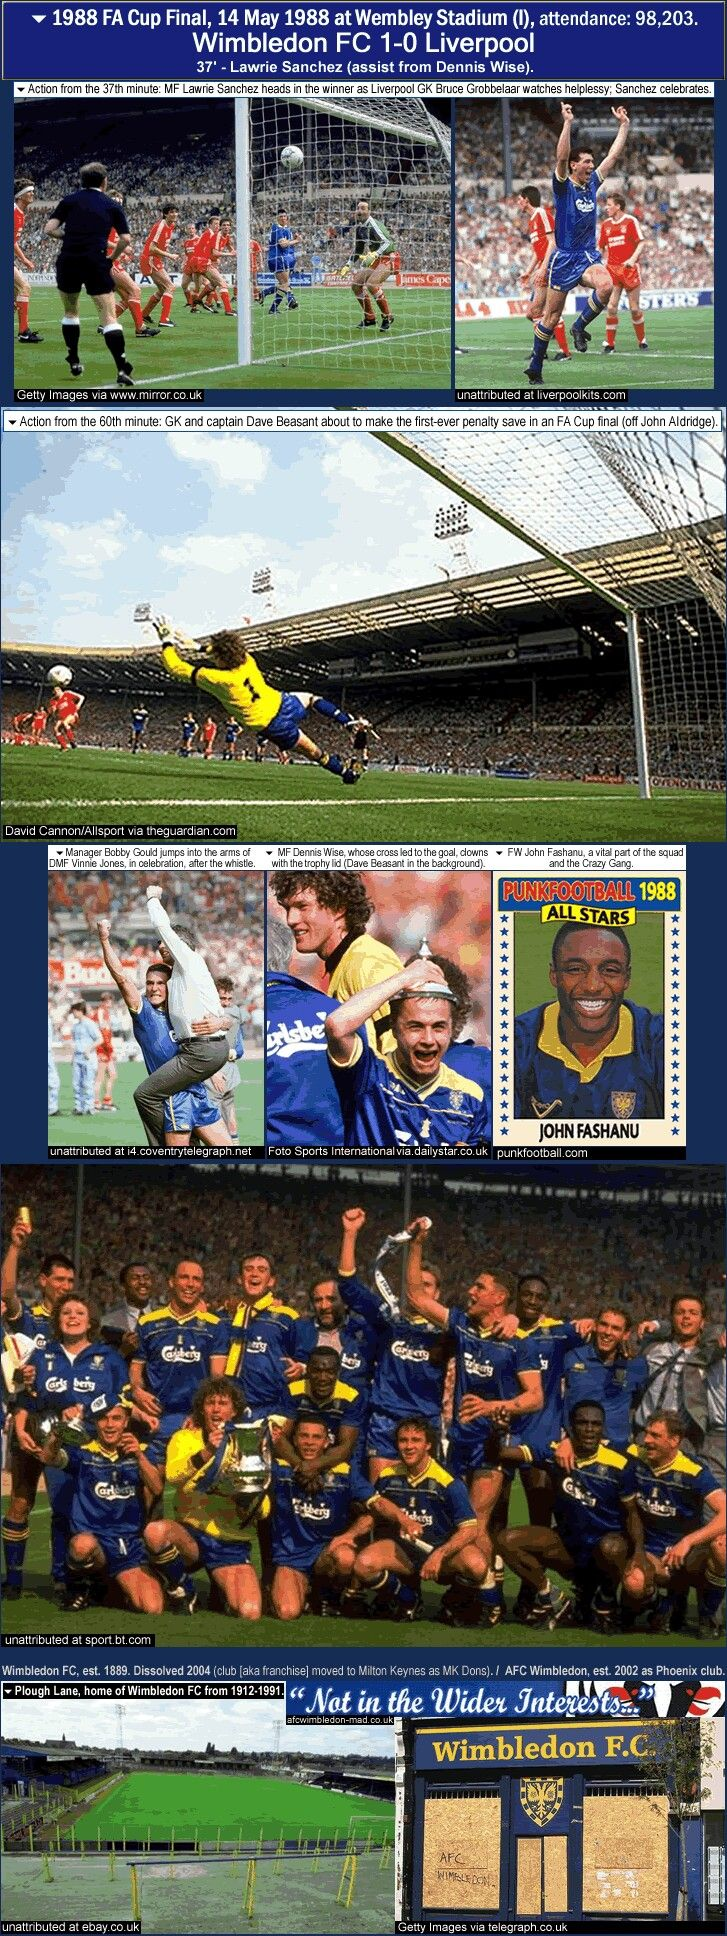 Wimbledon 1 Liverpool 0 in May 1988 at Wembley. Action from the FA Cup Final.